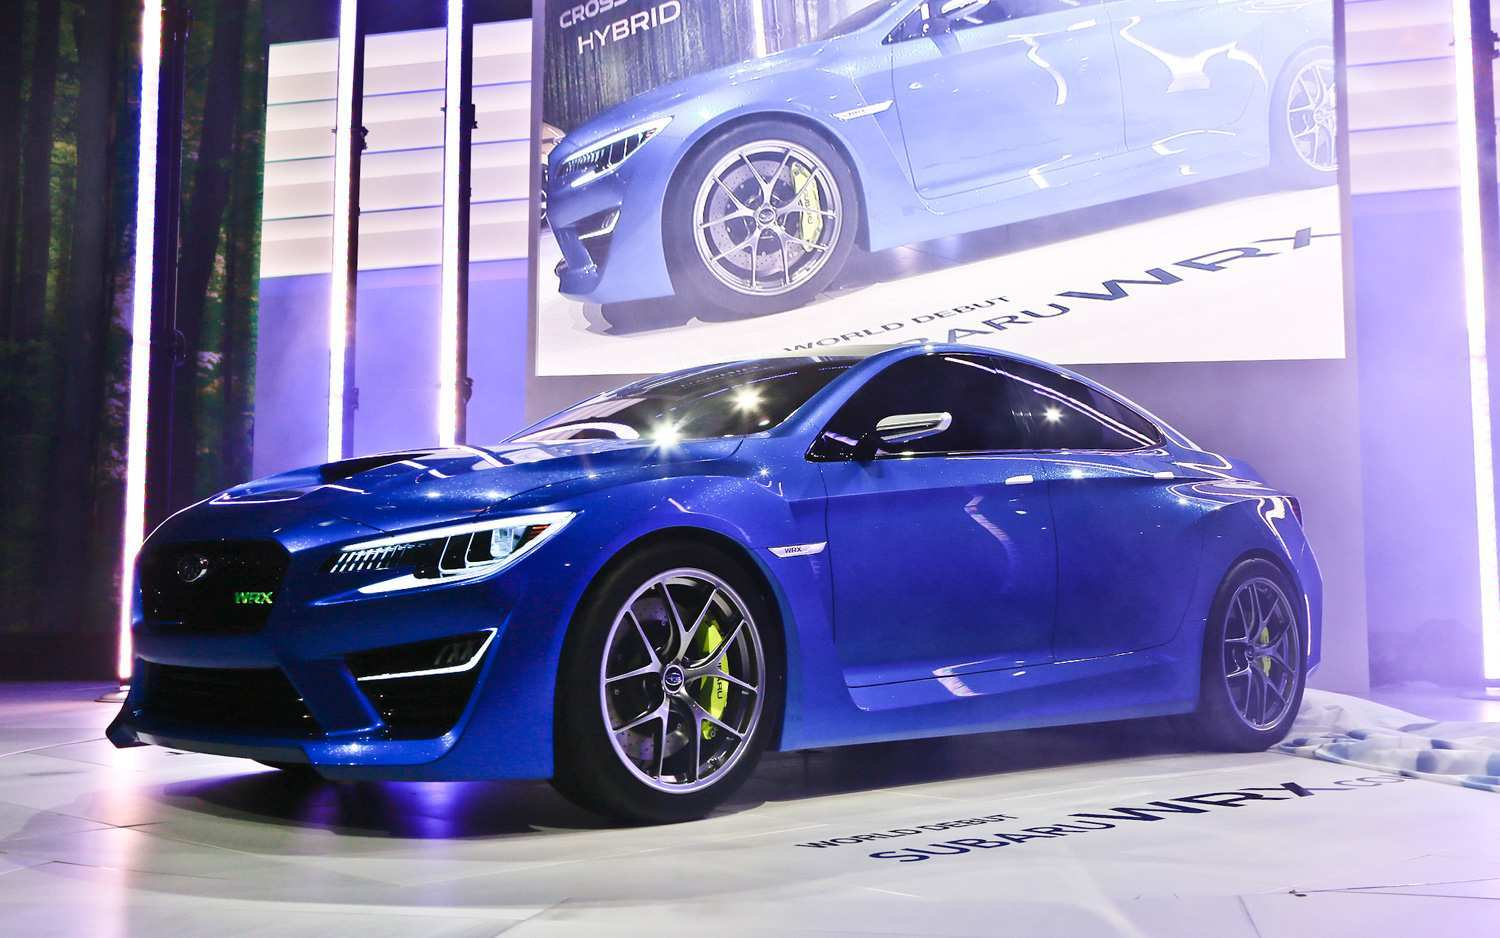 93 Concept Of 2020 Subaru Wrx Sti Hatchback Pictures Car